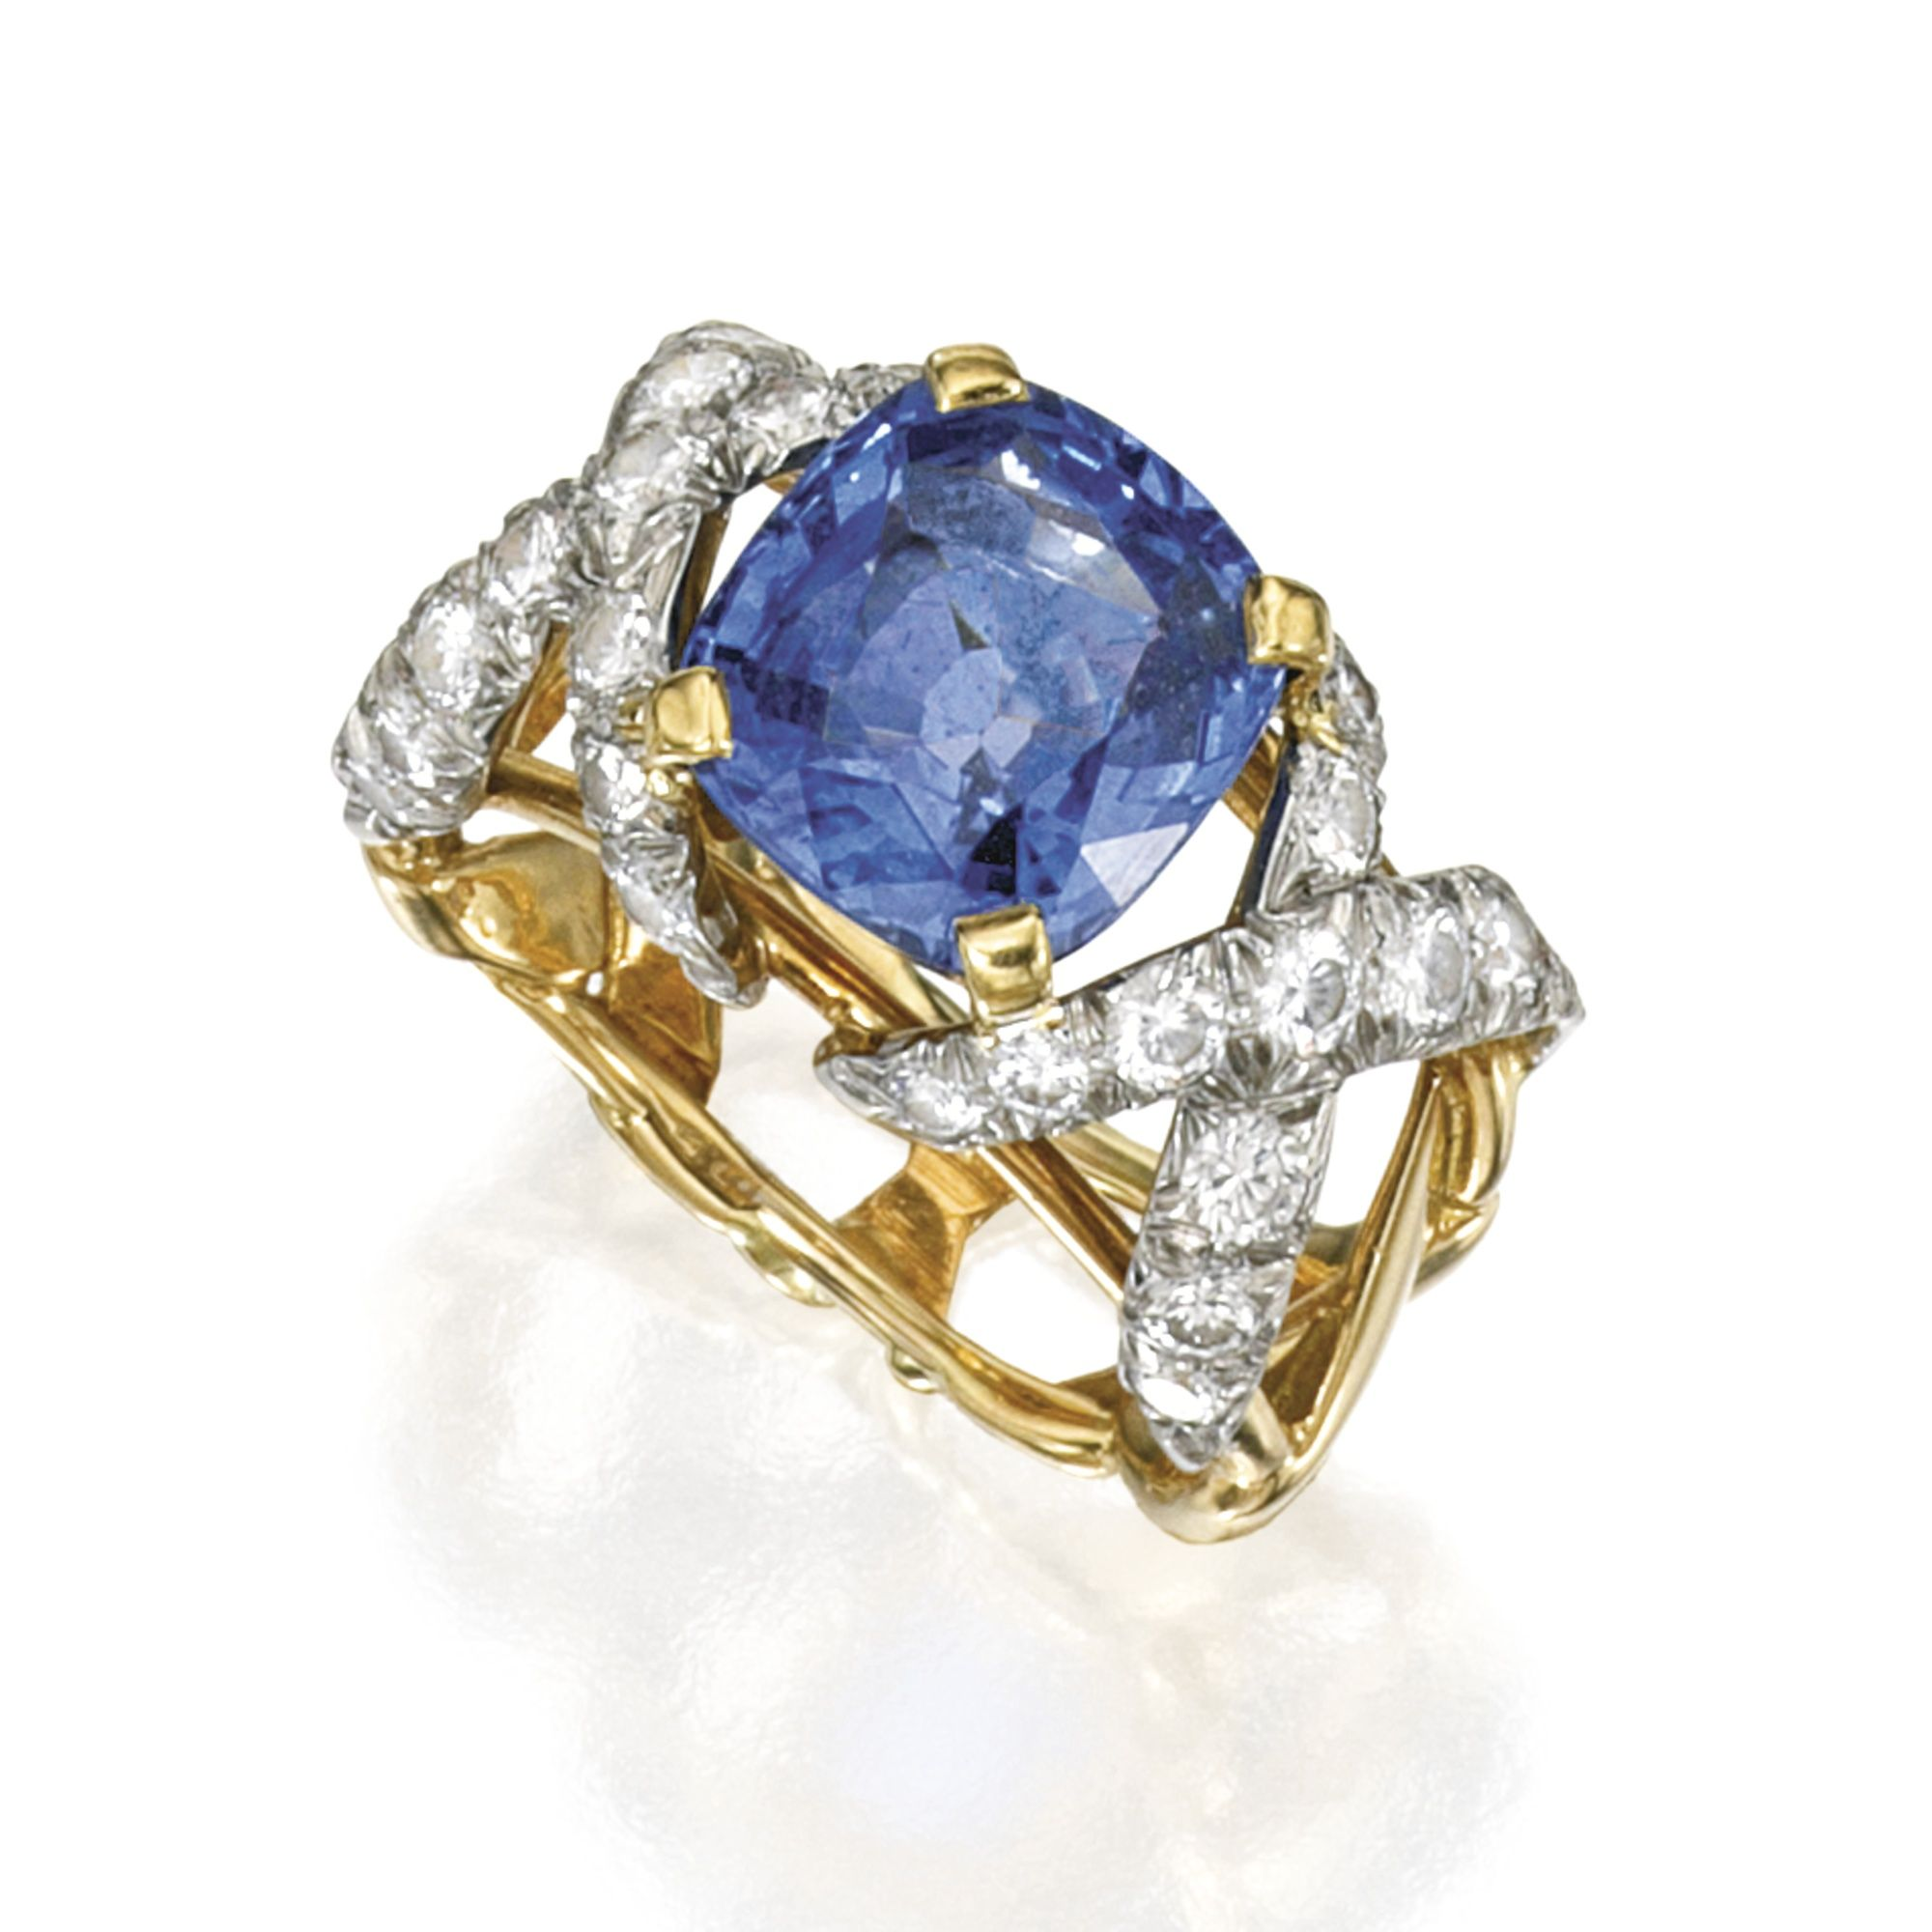 18 KARAT TWO COLOR GOLD SAPPHIRE AND DIAMOND RING MOUNTED BY